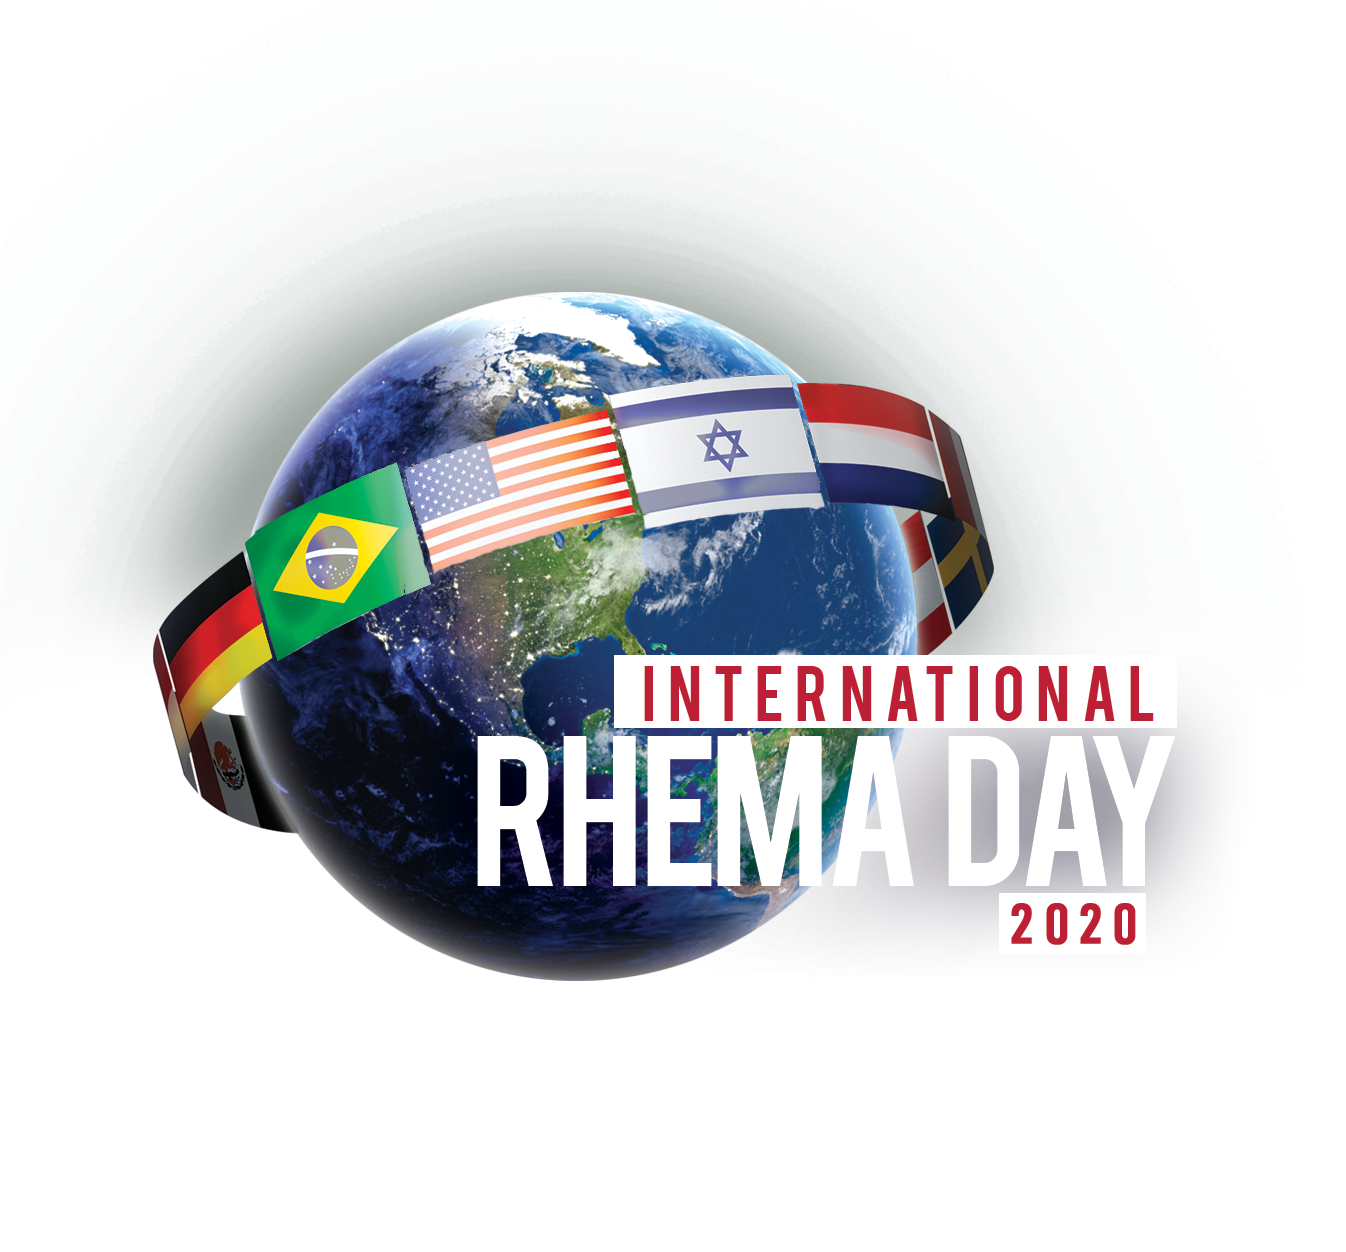 International Rhema day Logo